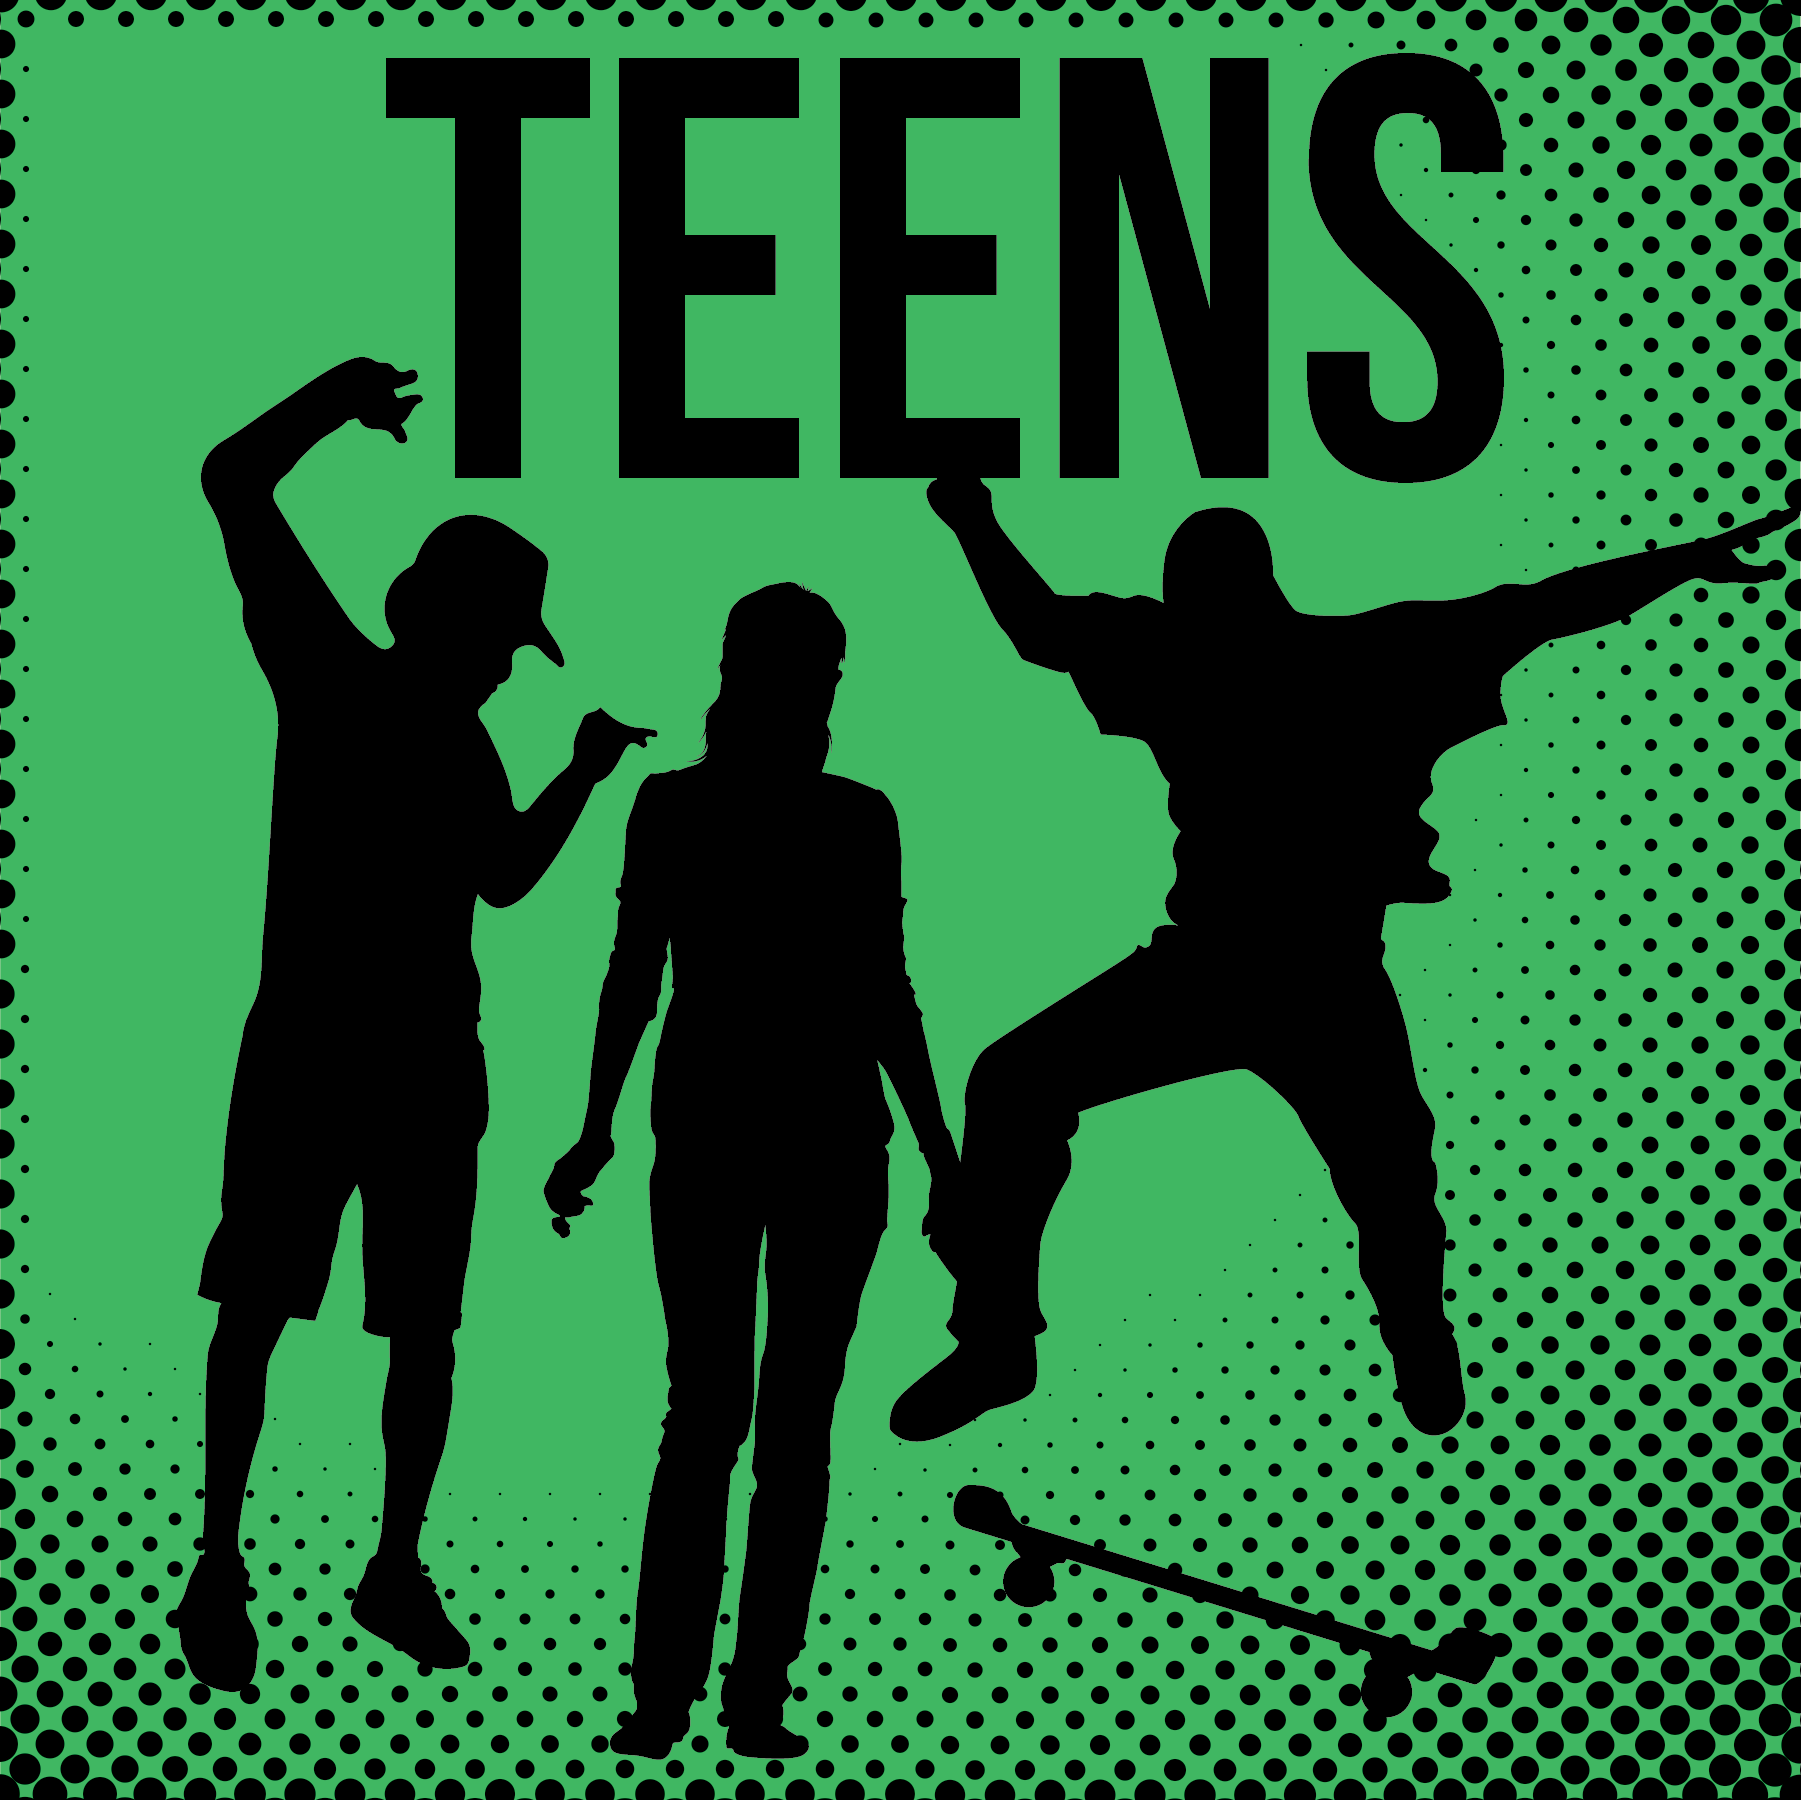 Teen After Hours: Take a Chill Pill